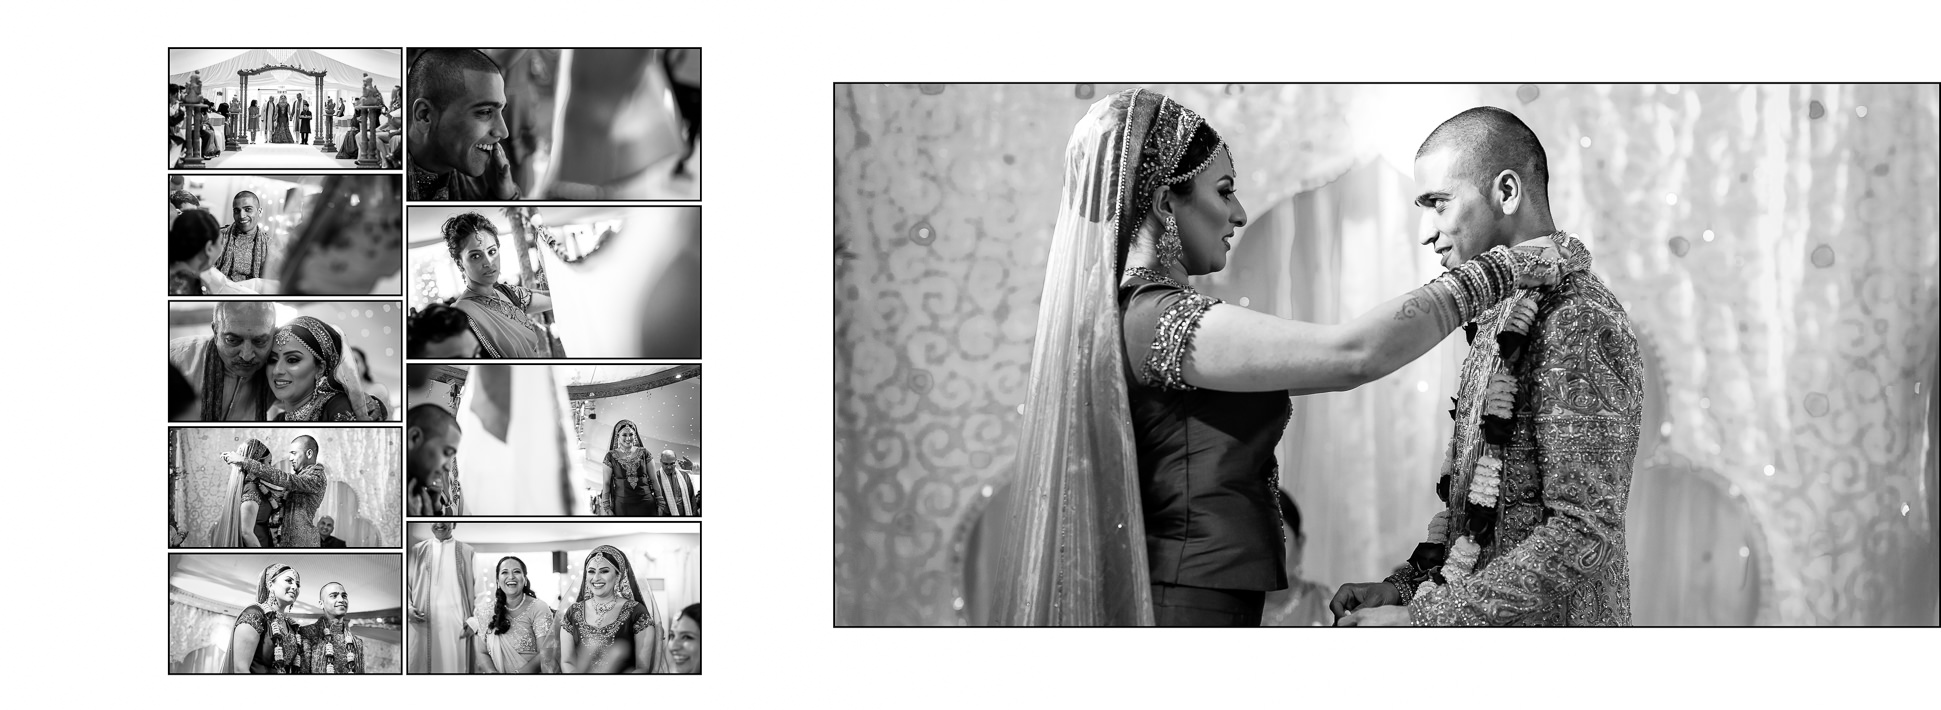 indian-wedding-photographer-hindu-13-of-28